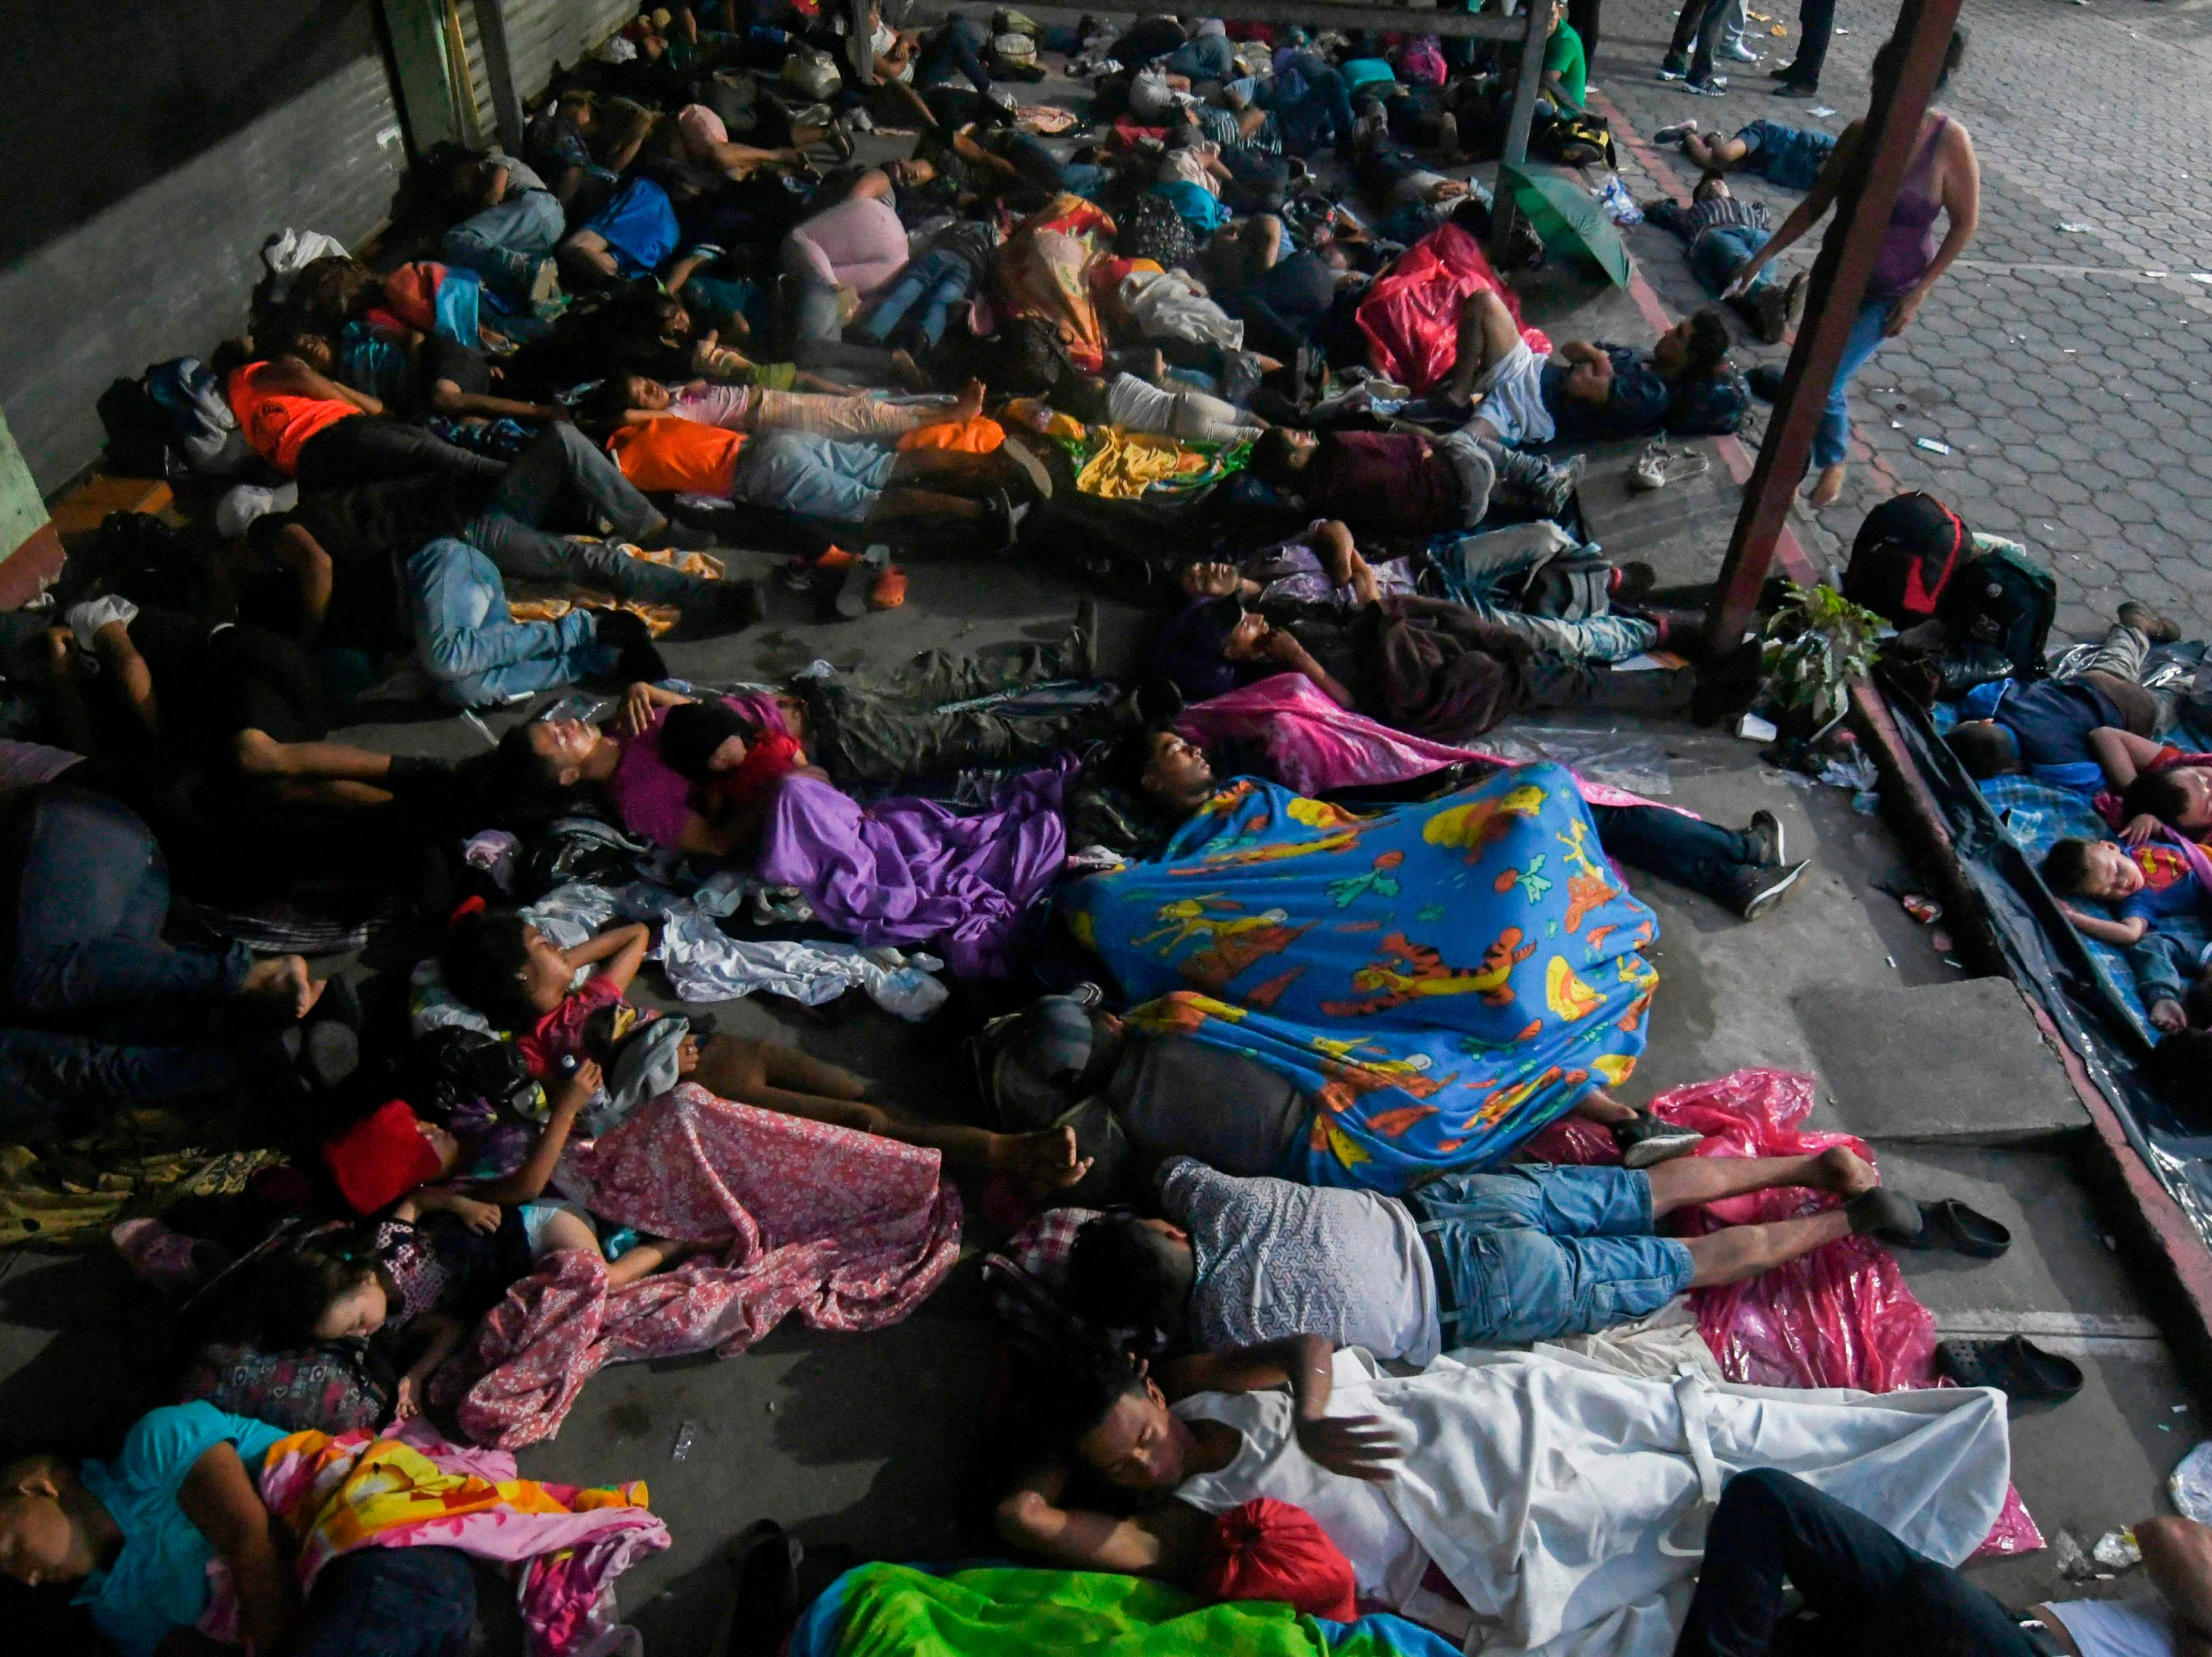 Honduran migrants taking part in a caravan heading to the US, sleep in the main square of Ciudad Tecun Uman, Guatemala, in the border with Mexico, on Oct. 20, 2018. Thousands of migrants who forced their way through Guatemala's northwestern border and flooded onto a bridge leading to Mexico, where riot police battled them back, on Saturday waited at the border in the hope of continuing their journey to the United States.